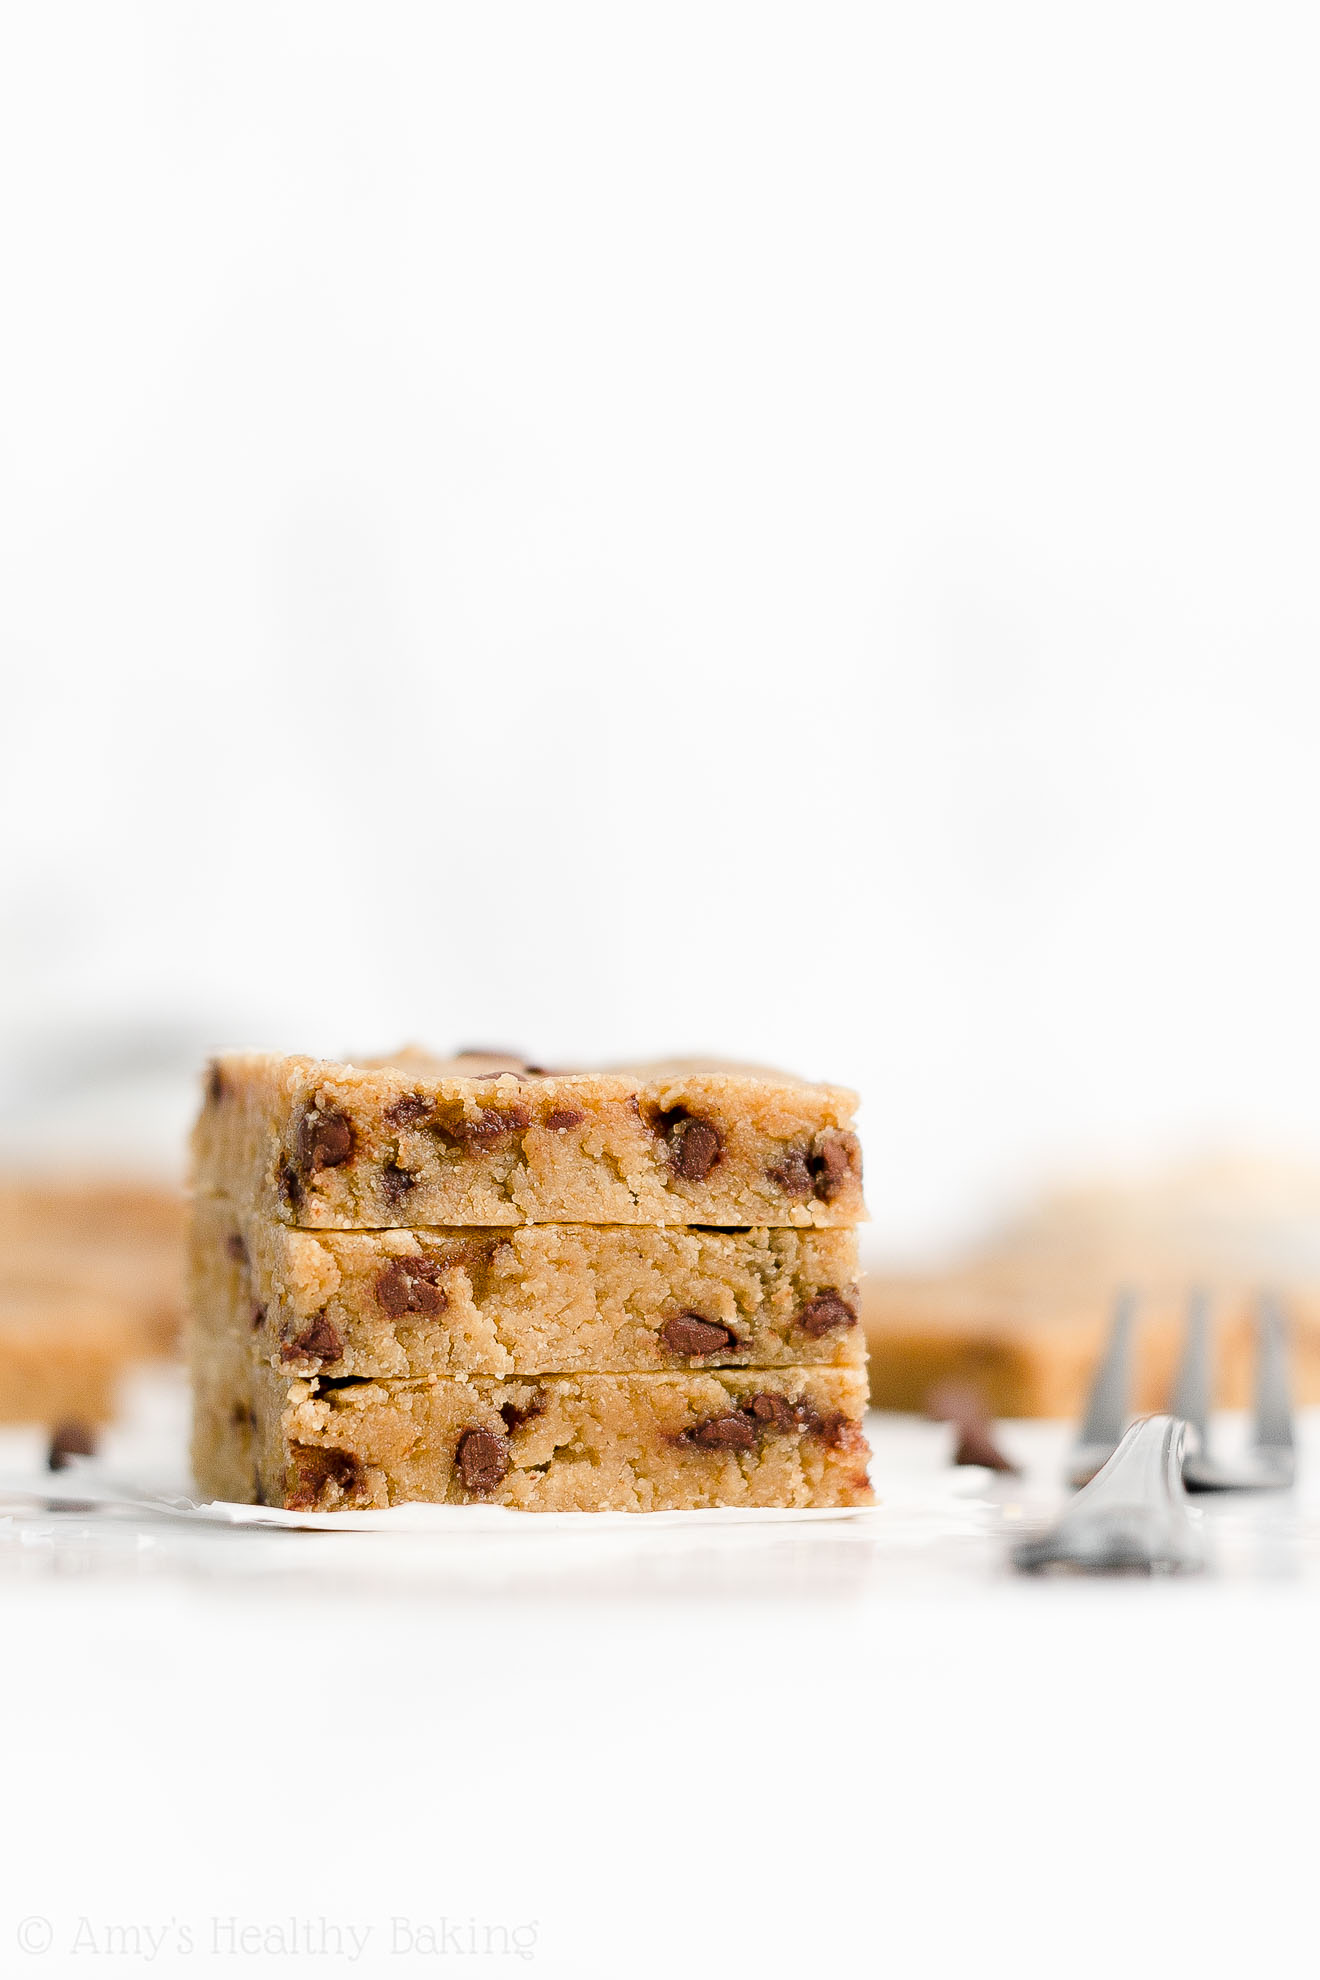 Healthy Clean Eating Low Fat Flourless Chocolate Chip Peanut Butter Cookie Bars